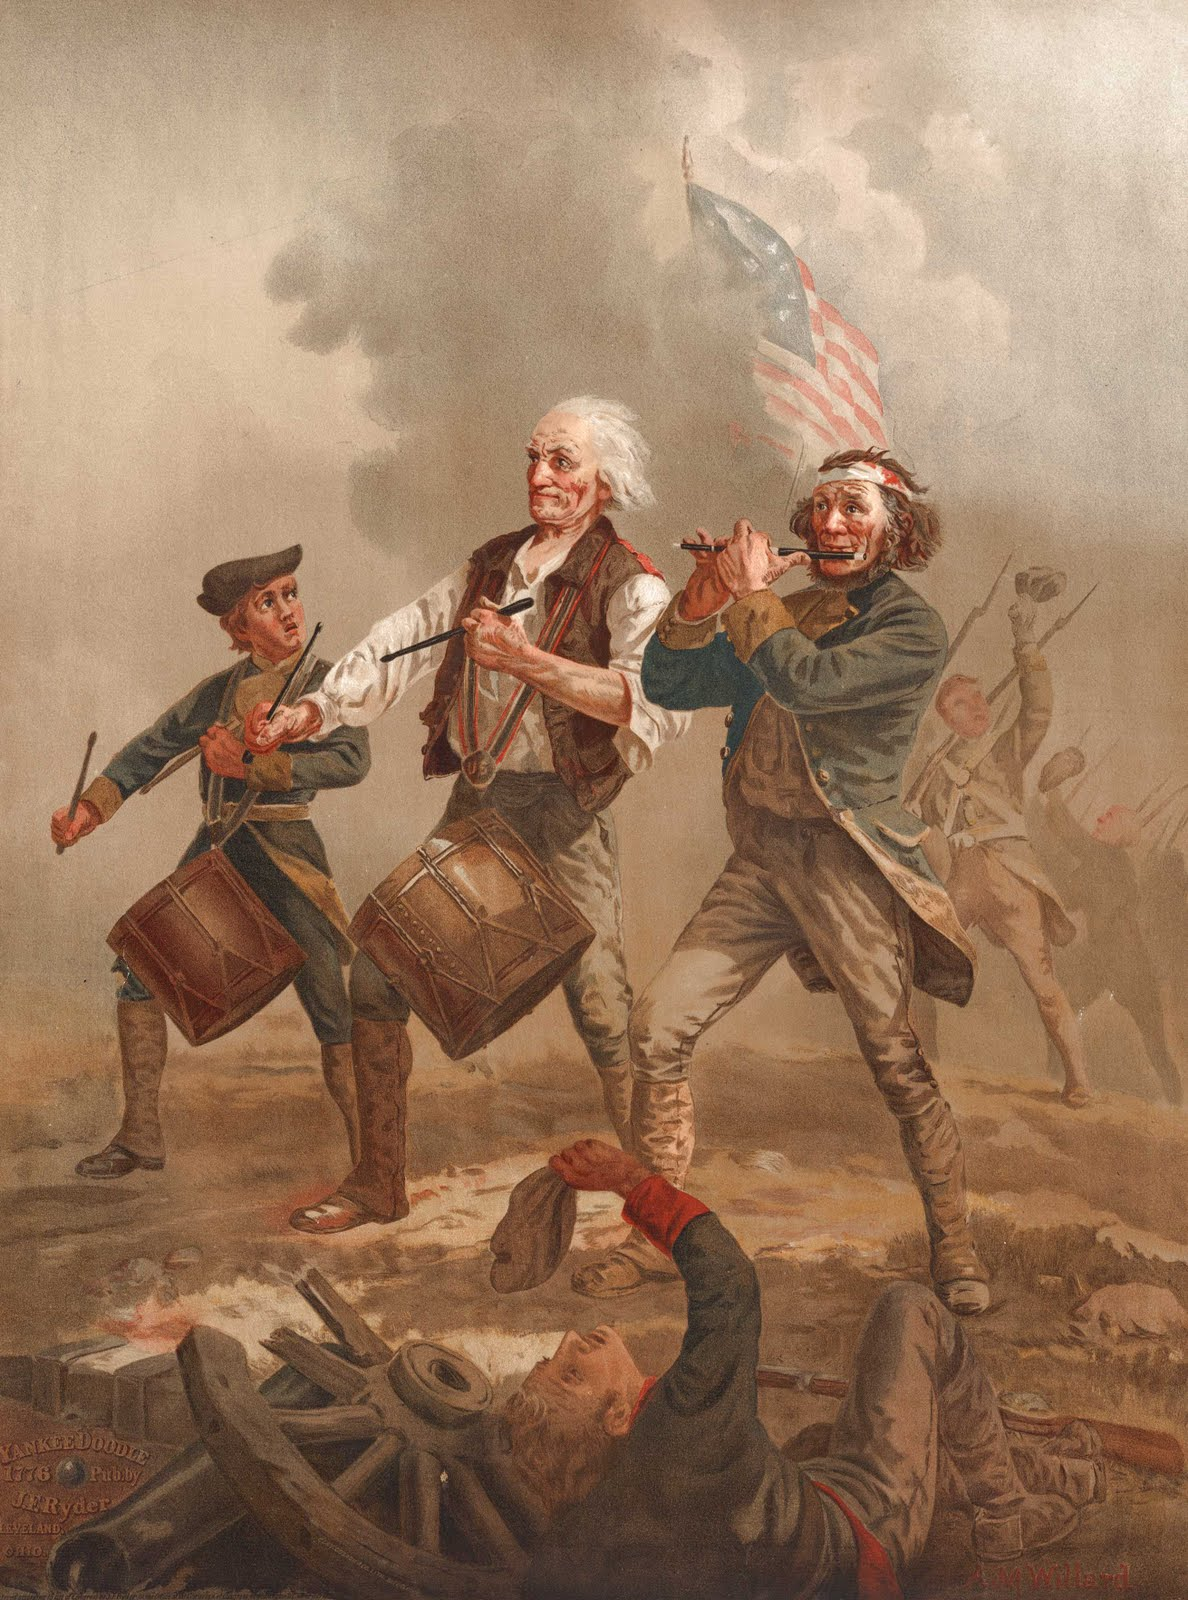 the women during the revolutionary colonial america Colonial america & revolution george washington: this lesson will analyze the thoughts and the experiences that women had before and during the american revolution.